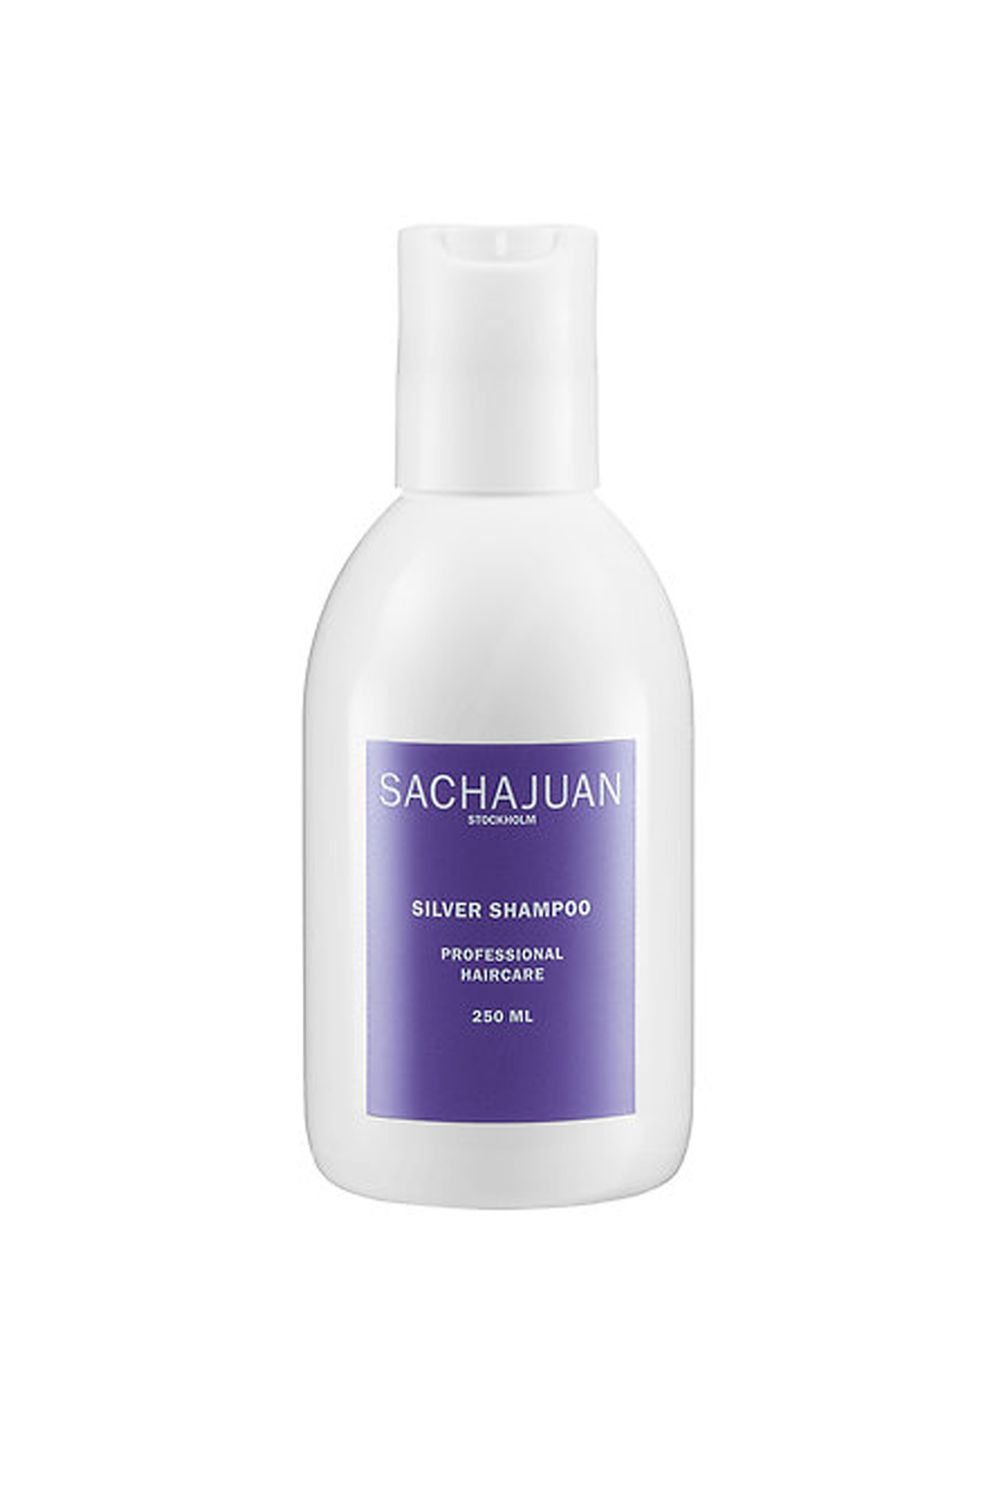 "<p>Has purple pigments: You know what that does. Also has UV filters: You know what that does too but are still impressed/<a href=""http://www.marieclaire.com/beauty/news/a20983/summer-hair-damage-tips/"" target=""_blank"" data-tracking-id=""recirc-text-link"">worried about your hair needing SPF</a>.&nbsp&#x3B;</p><p>Sachajuan Silver Shampoo, $31, <a href=""http://www.sephora.com/silver-shampoo-P378304?skuId=1851765&amp&#x3B;icid2=products%20grid:p378304"" target=""_blank"" data-tracking-id=""recirc-text-link"">sephora.com</a>.</p>"